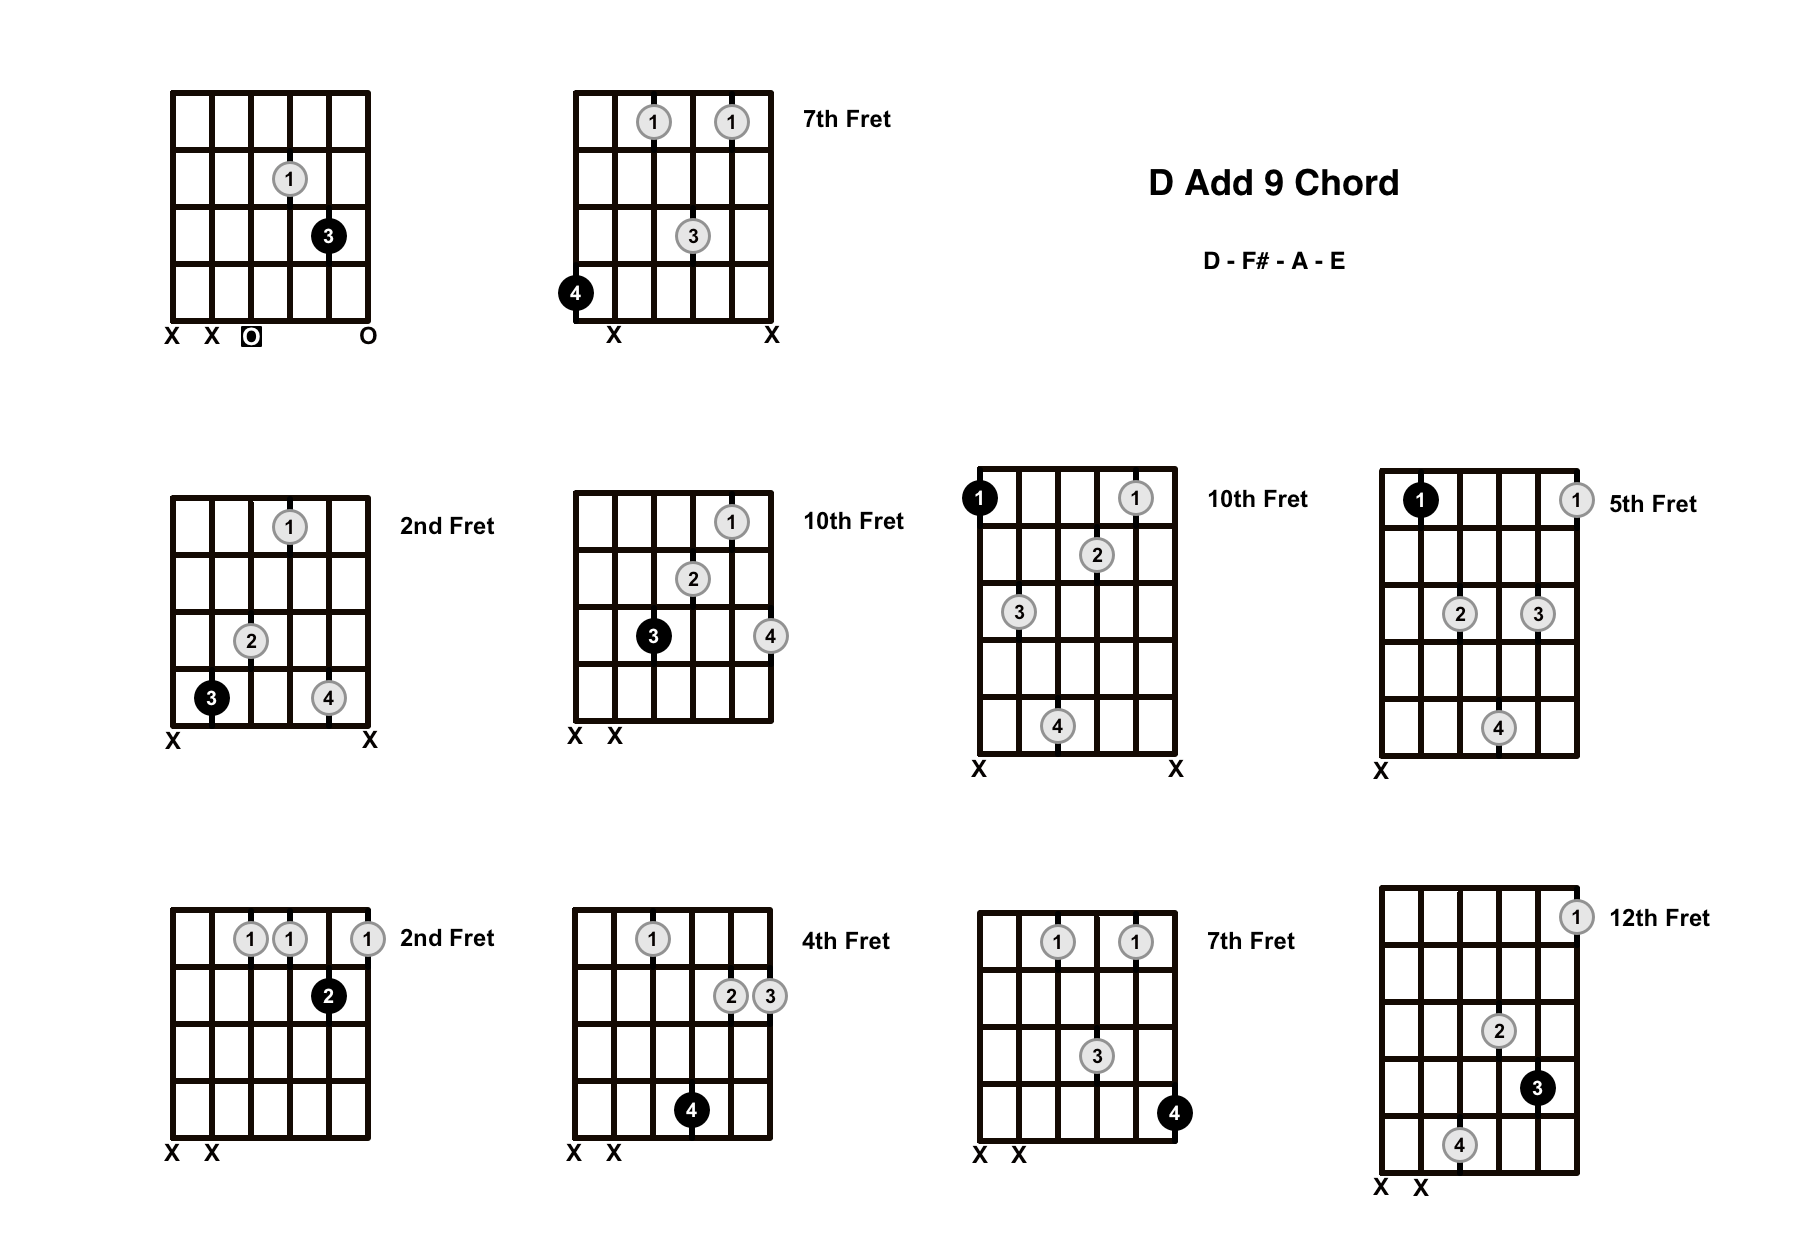 D Add 9 Chord On The Guitar (D Add 9/D Add 2) – Diagrams, Finger Positions and Theory